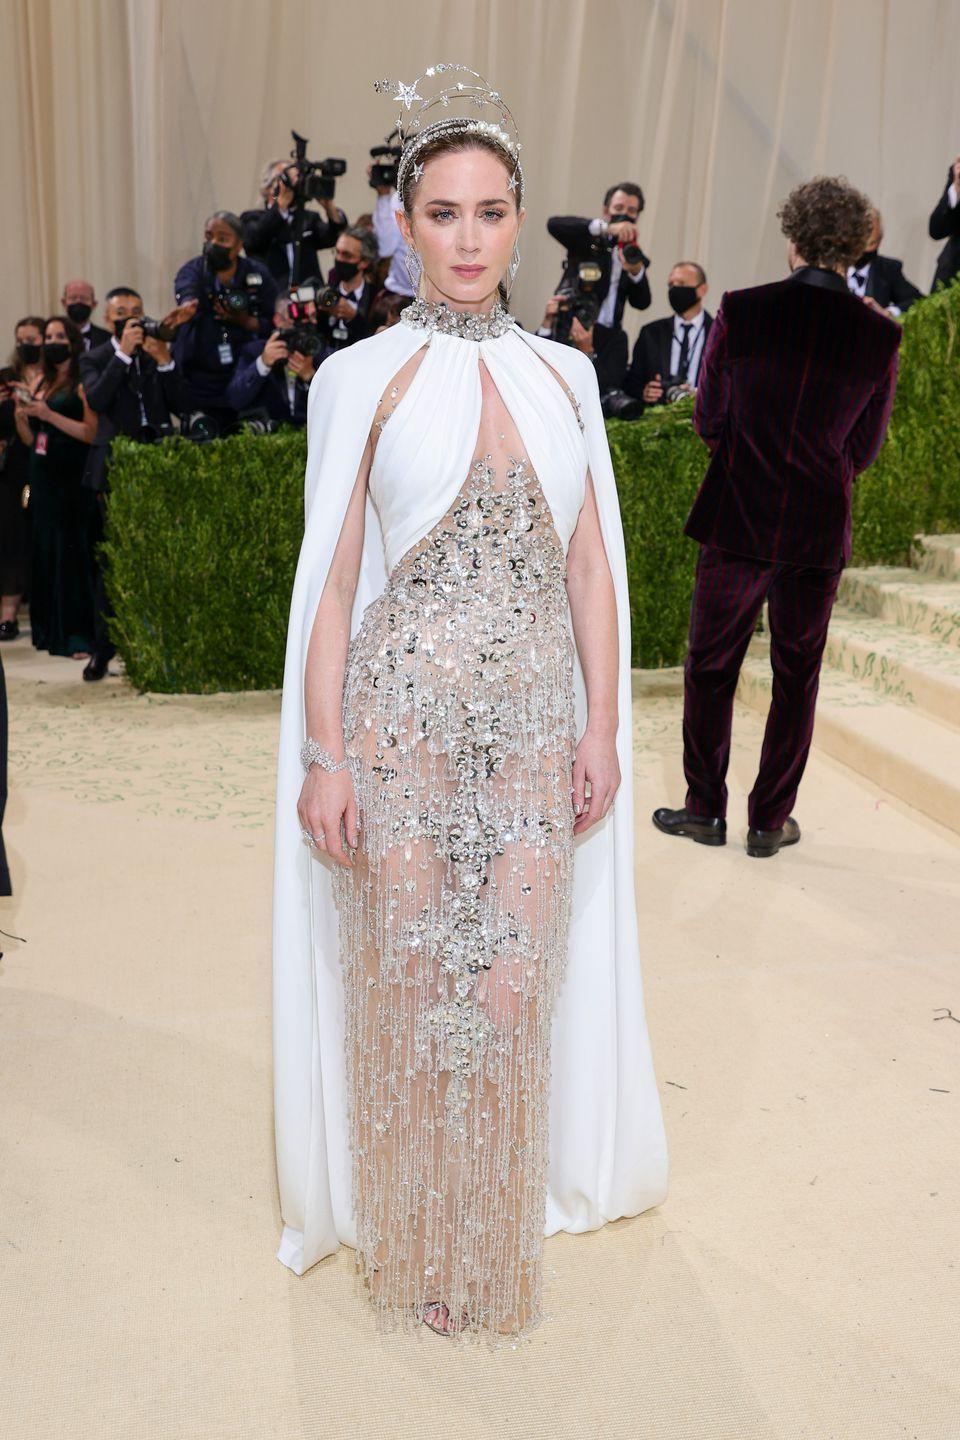 <p>The actor wore an embellished caped gown by Miu Miu.</p>